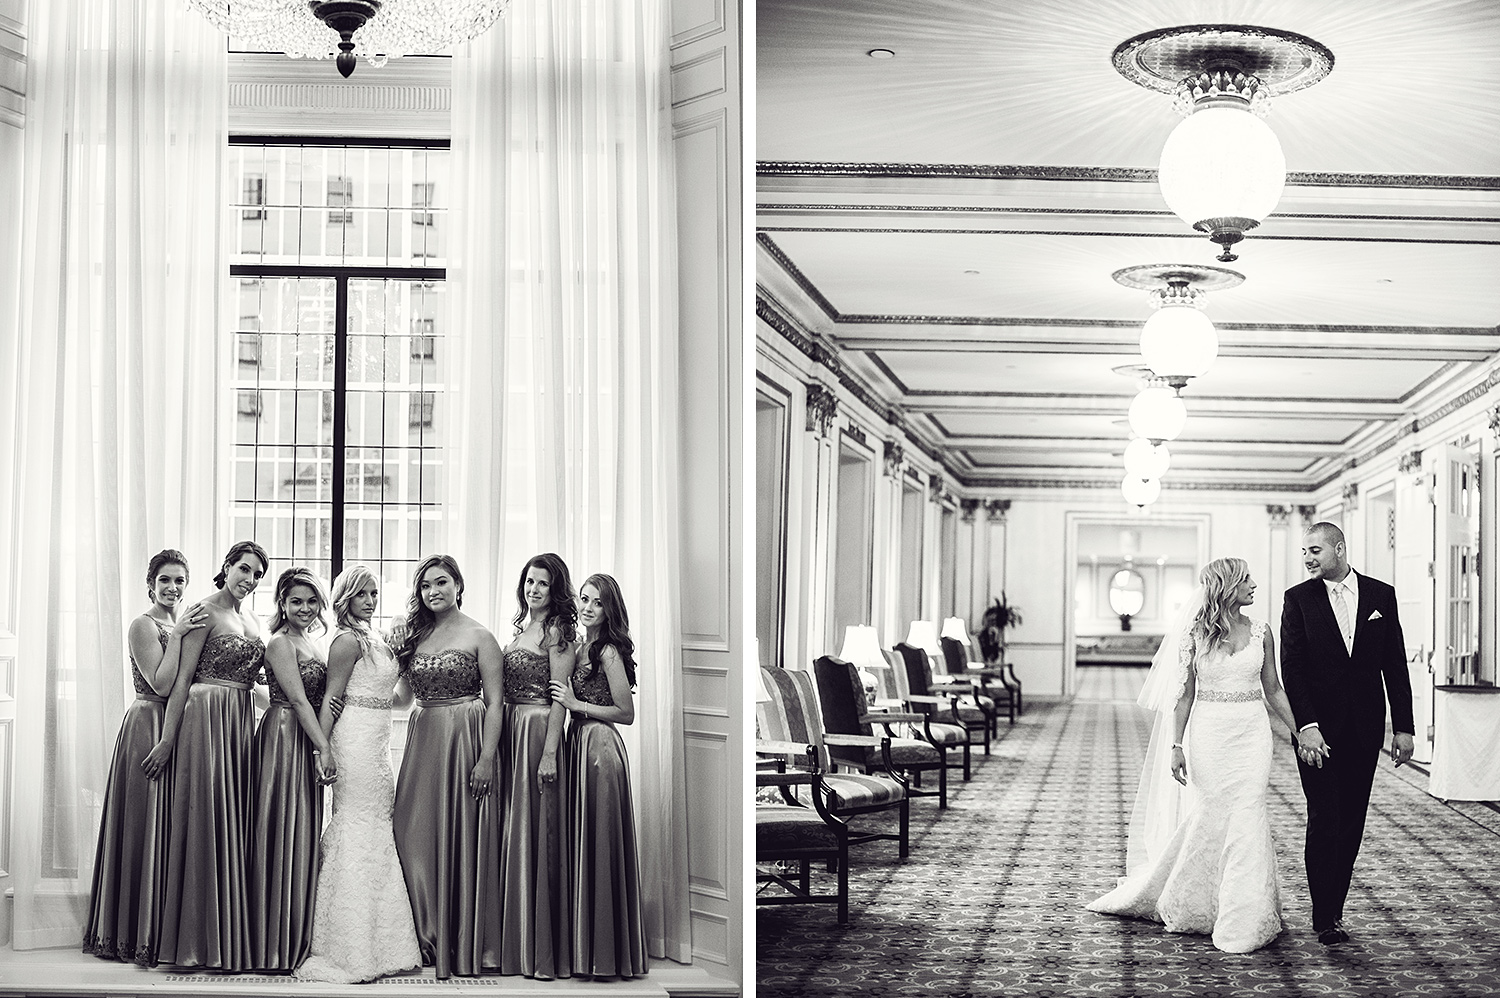 bridesmaids-bride-and-groom-fairmont-hotel-vancouver-yaletown-photography-photo